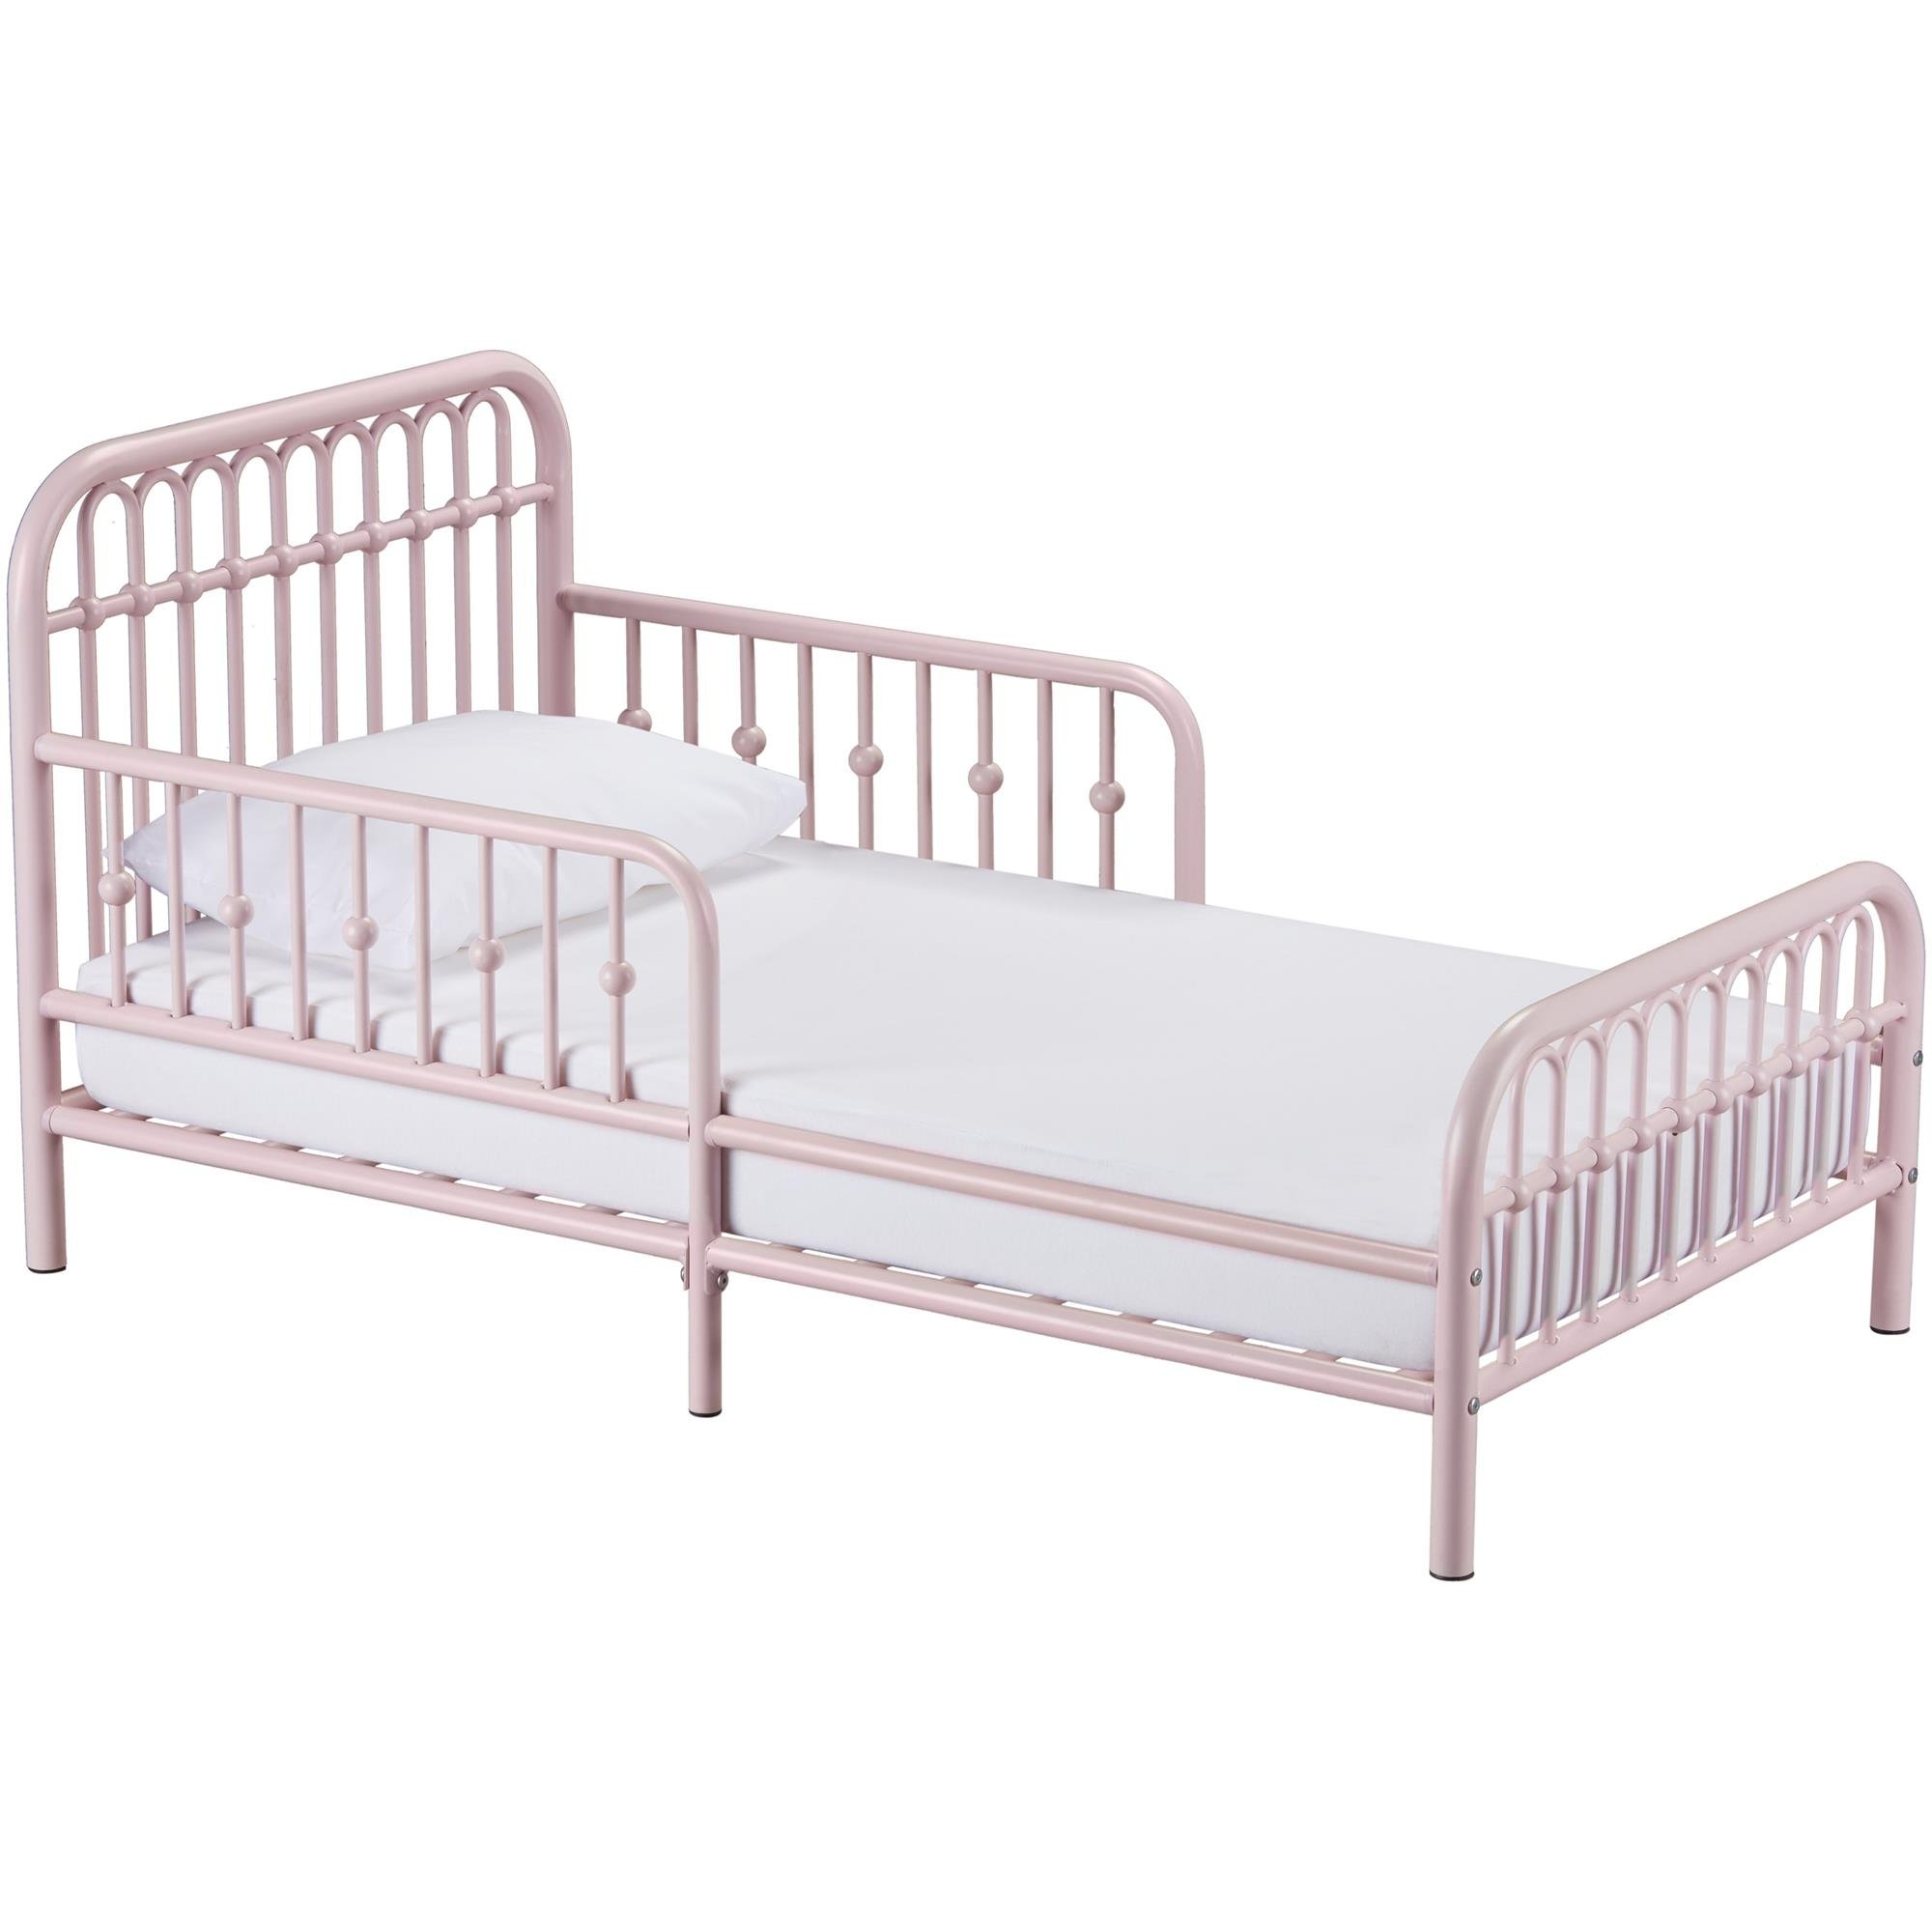 Little Seeds Monarch Hill Ivy Metal Toddler Bed, Pink by Little Seeds